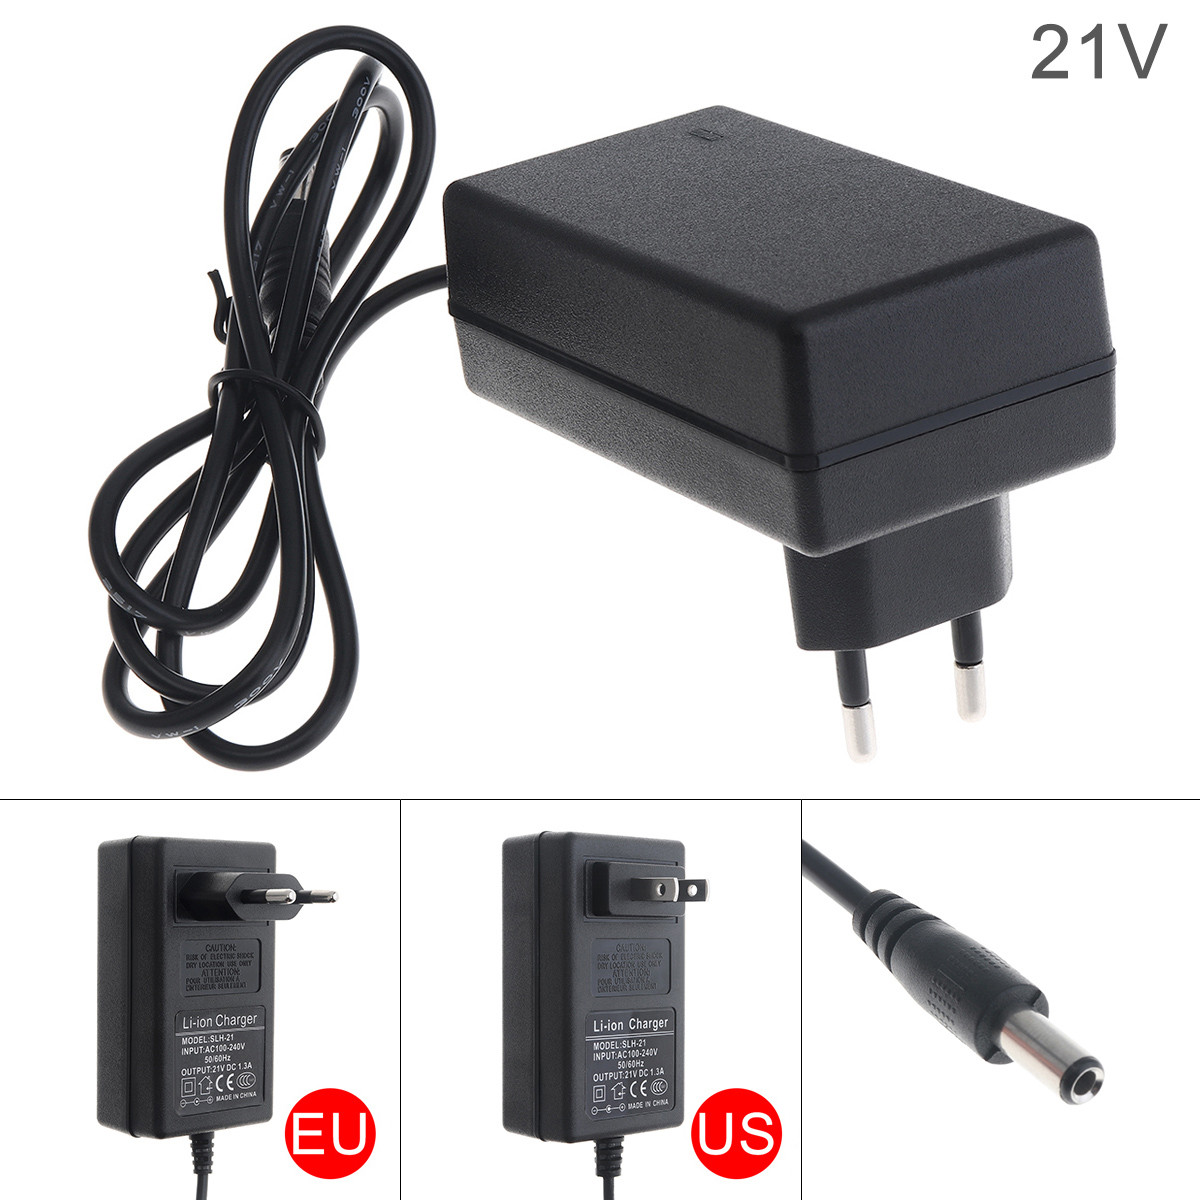 90cm 21V Lithium Battery Electric Drill Power Adapter Charger With EU Plug And US Plug For Electric Screwdriver Wrench